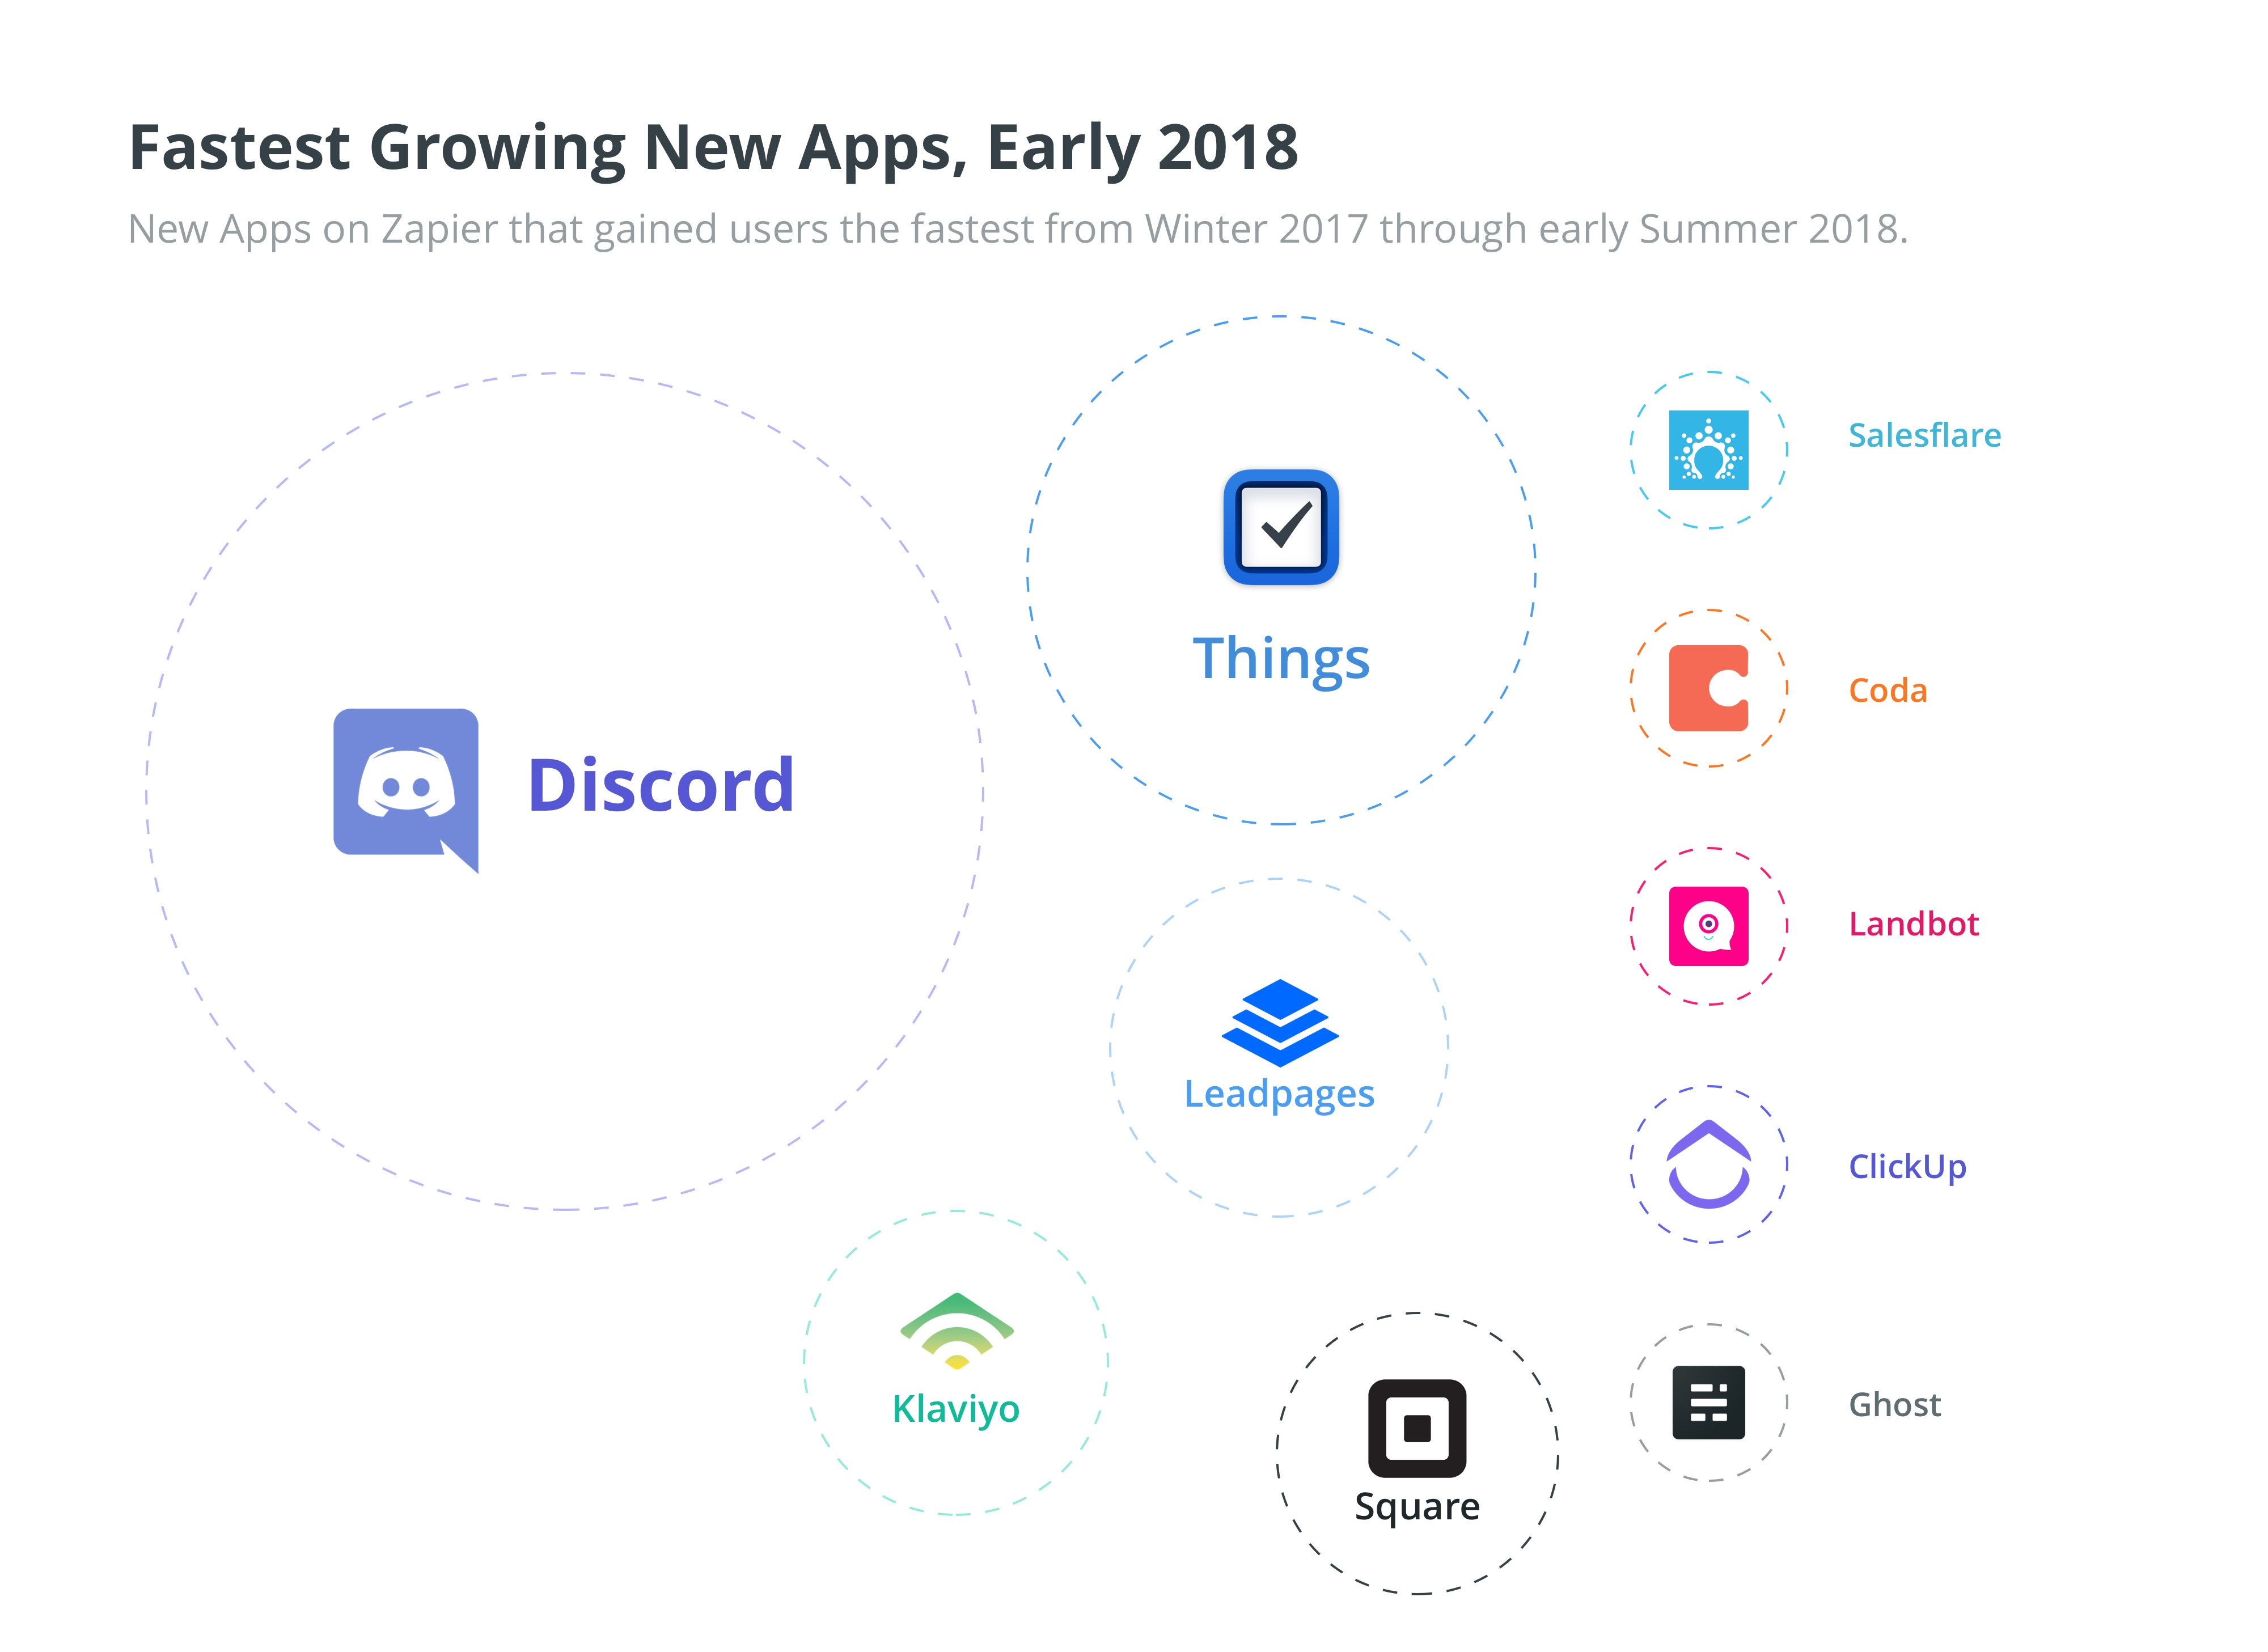 Zapier Fastest-Growing Apps Mid-Year 2018